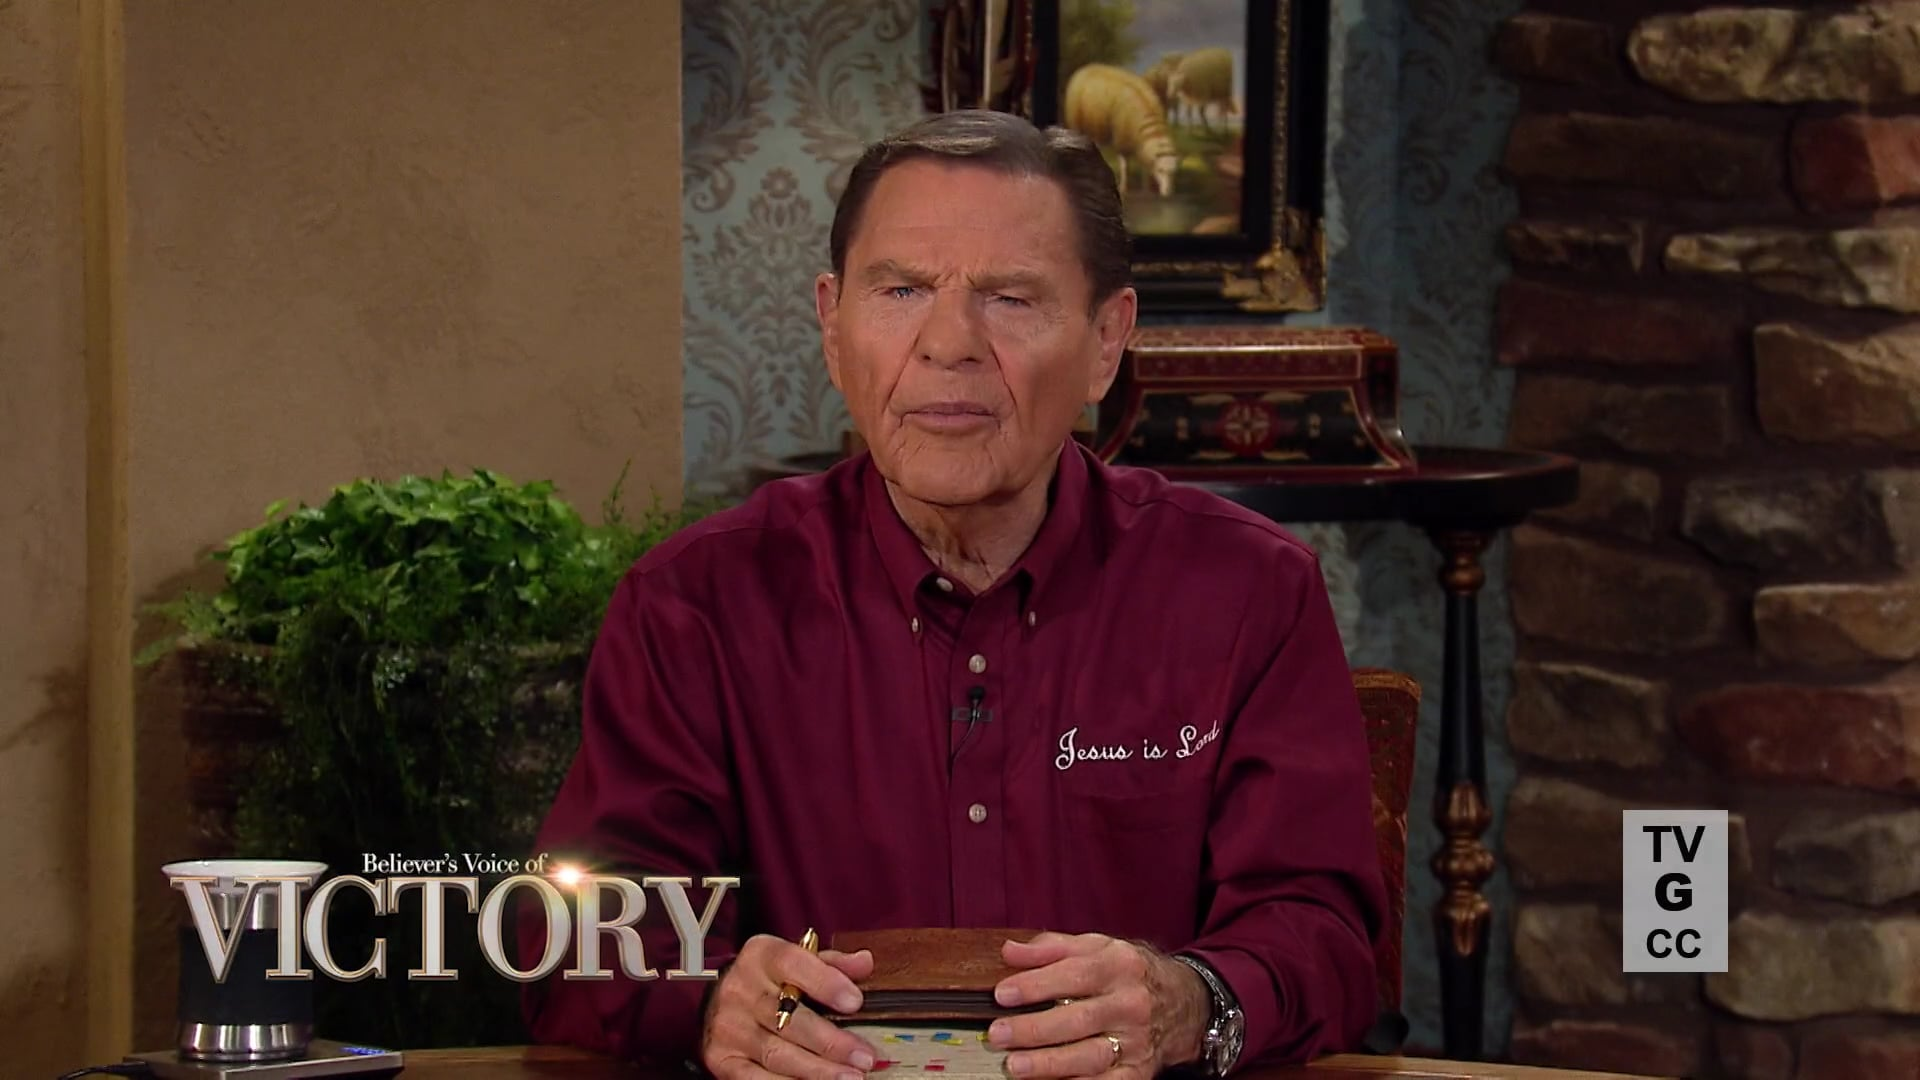 When your Goliath is yelling at you, what is your answer? Watch Believer's Voice of Victory as Kenneth Copeland teaches you why, if you're born again, you have a covenant with the same God that David did. Learn how you can defeat any Goliath in your life when you remember your covenant is bigger than the giant!